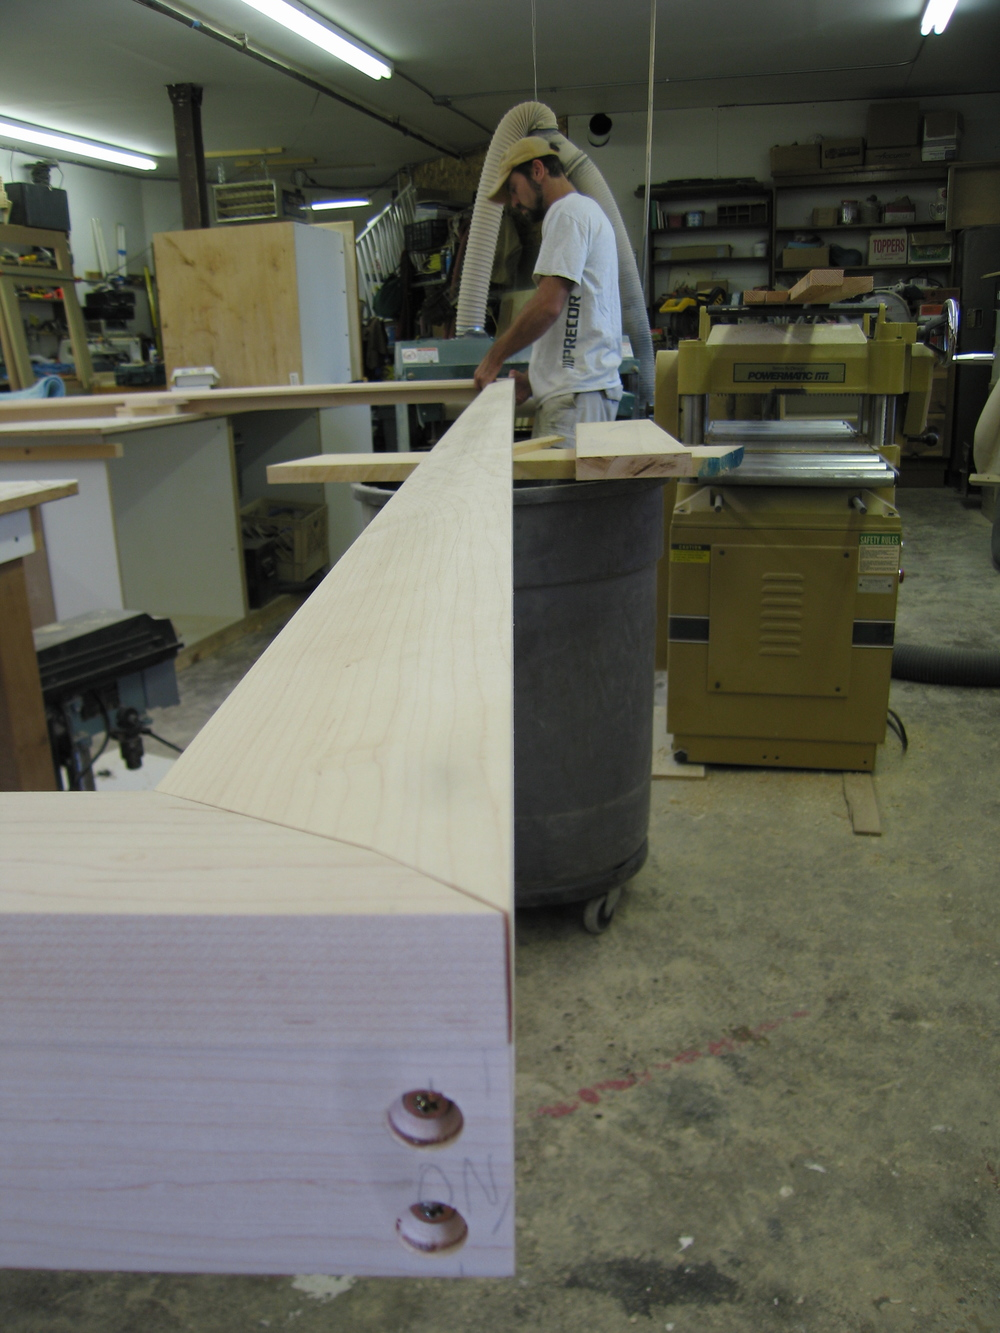 We made a custom jig to shape the chamfered profile of the frame.